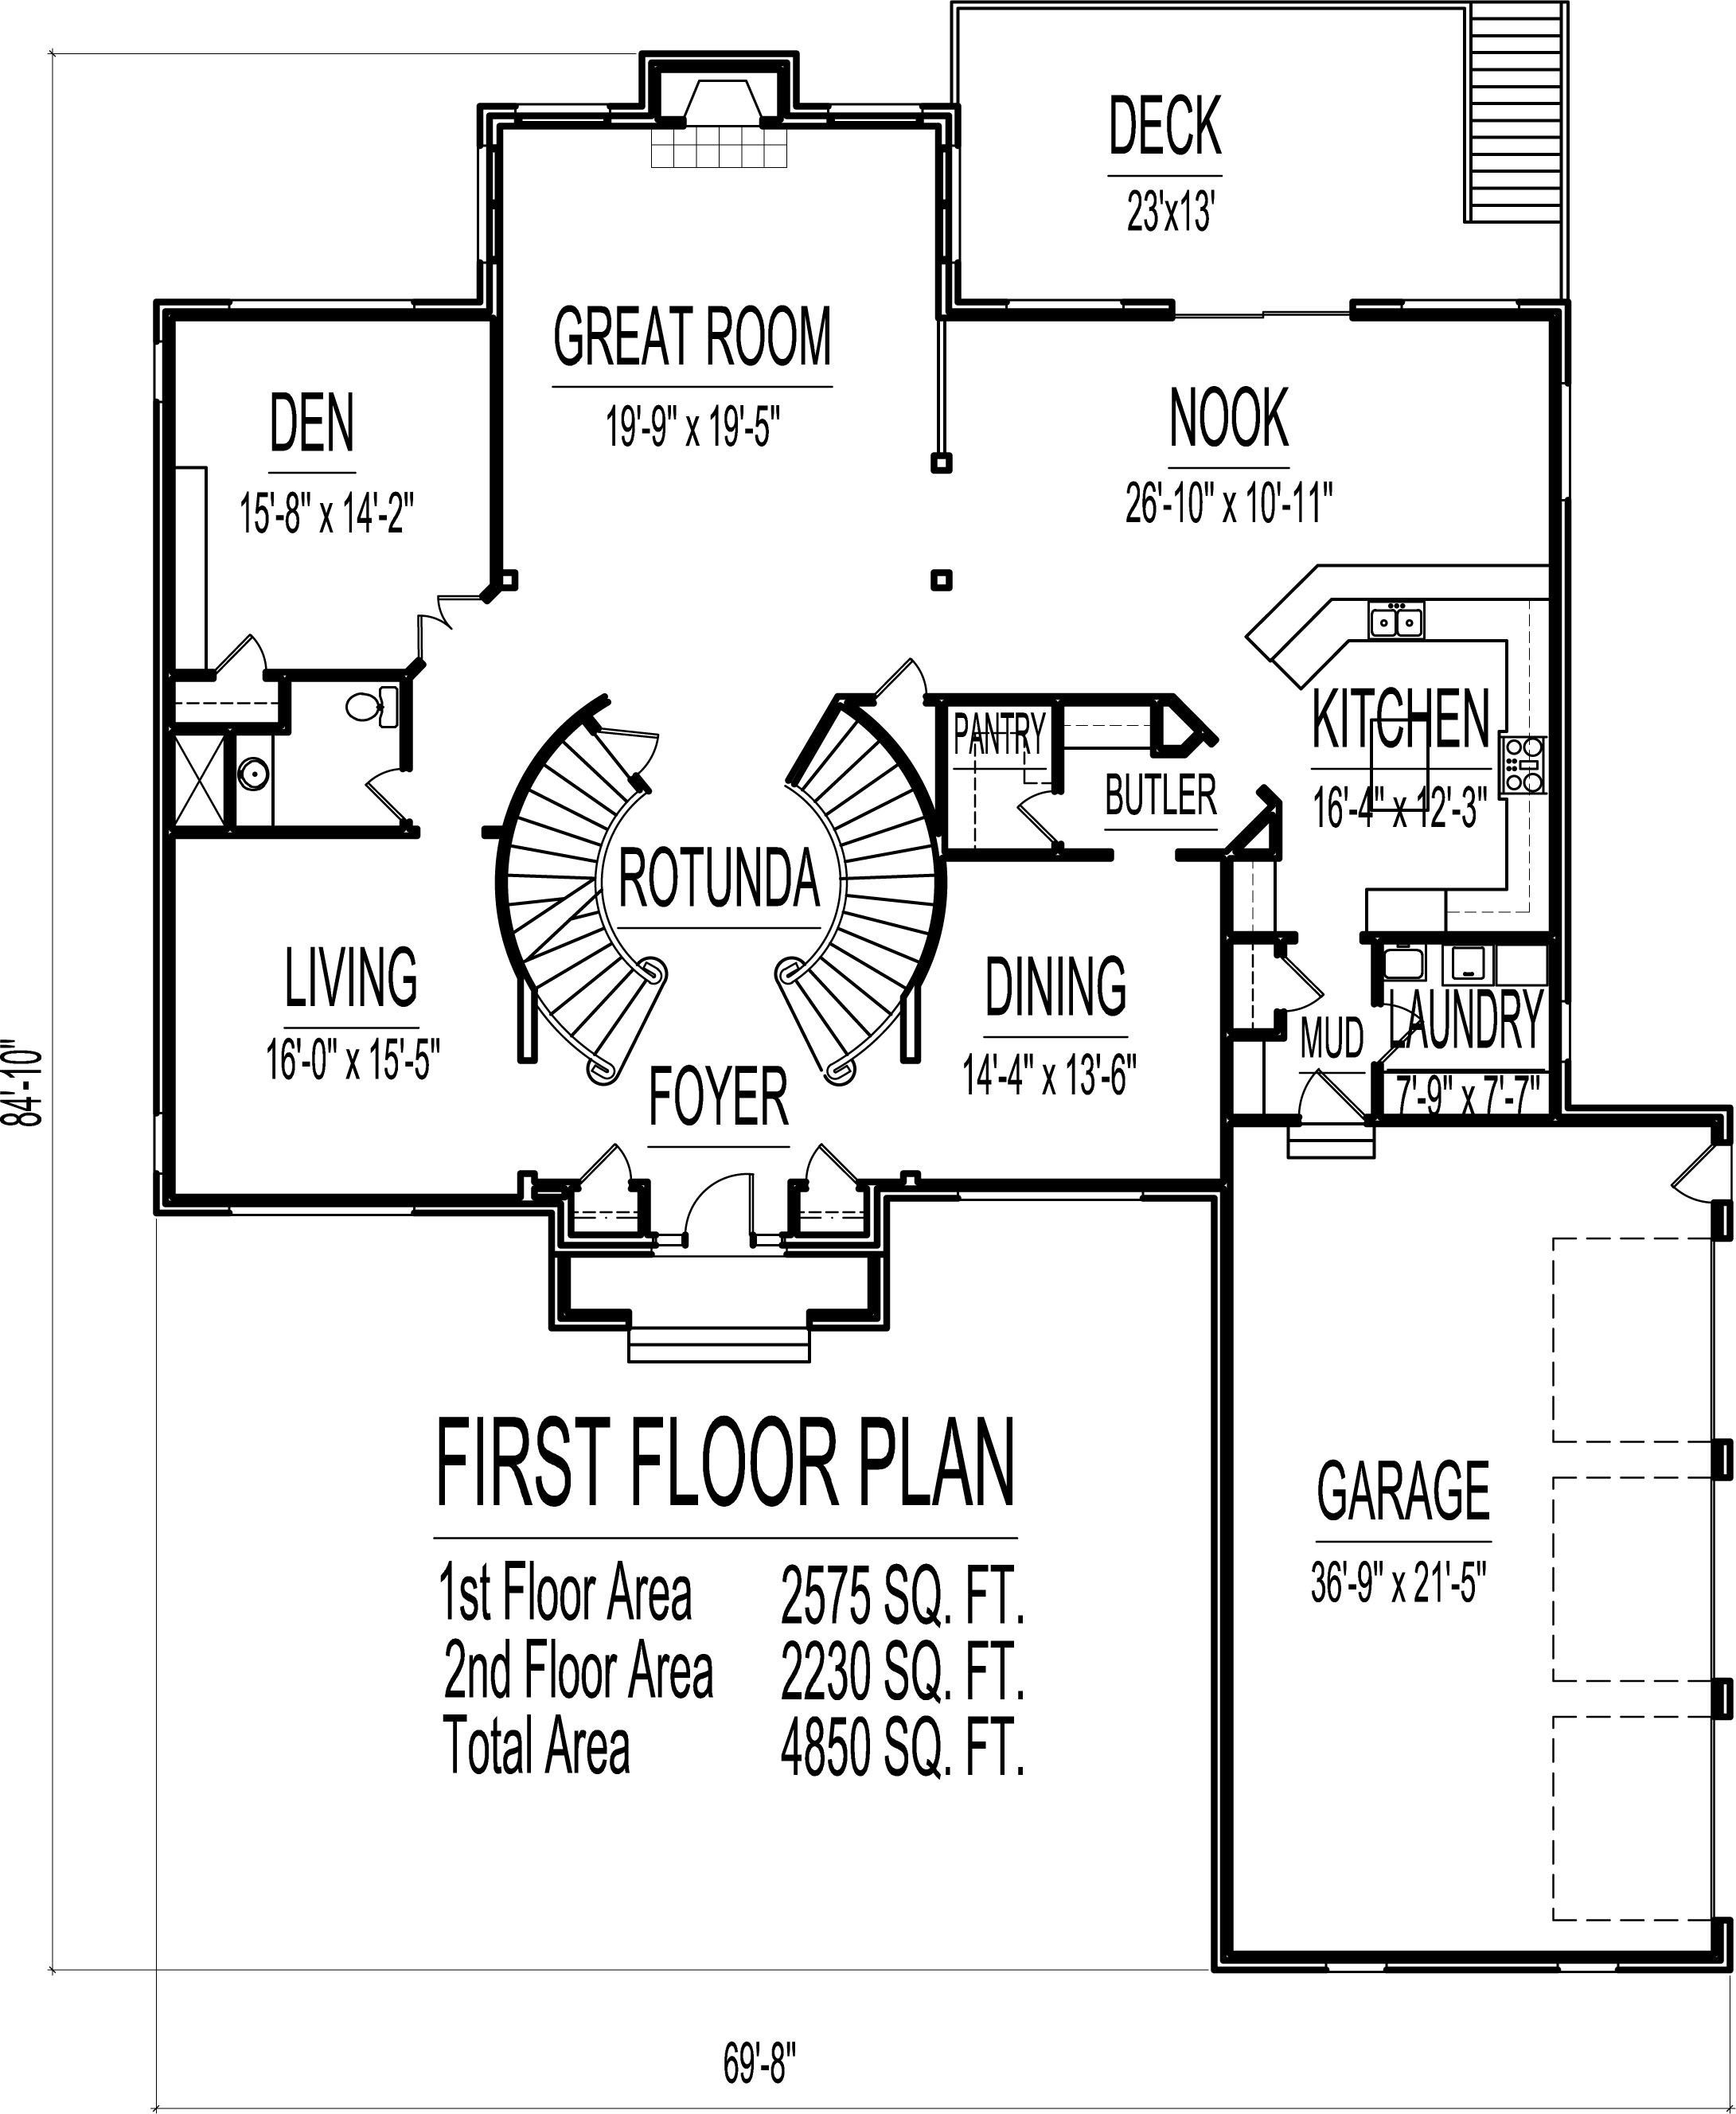 chicago home blueprints. 4500 Square Foot House Floor Plans with Rotunda 4 5 Bedroom 2 Story 3 Car  Garage 4800 Sq Ft Home Plan Blueprints Drawings Circular Double Staircase Two Chicago Peoria